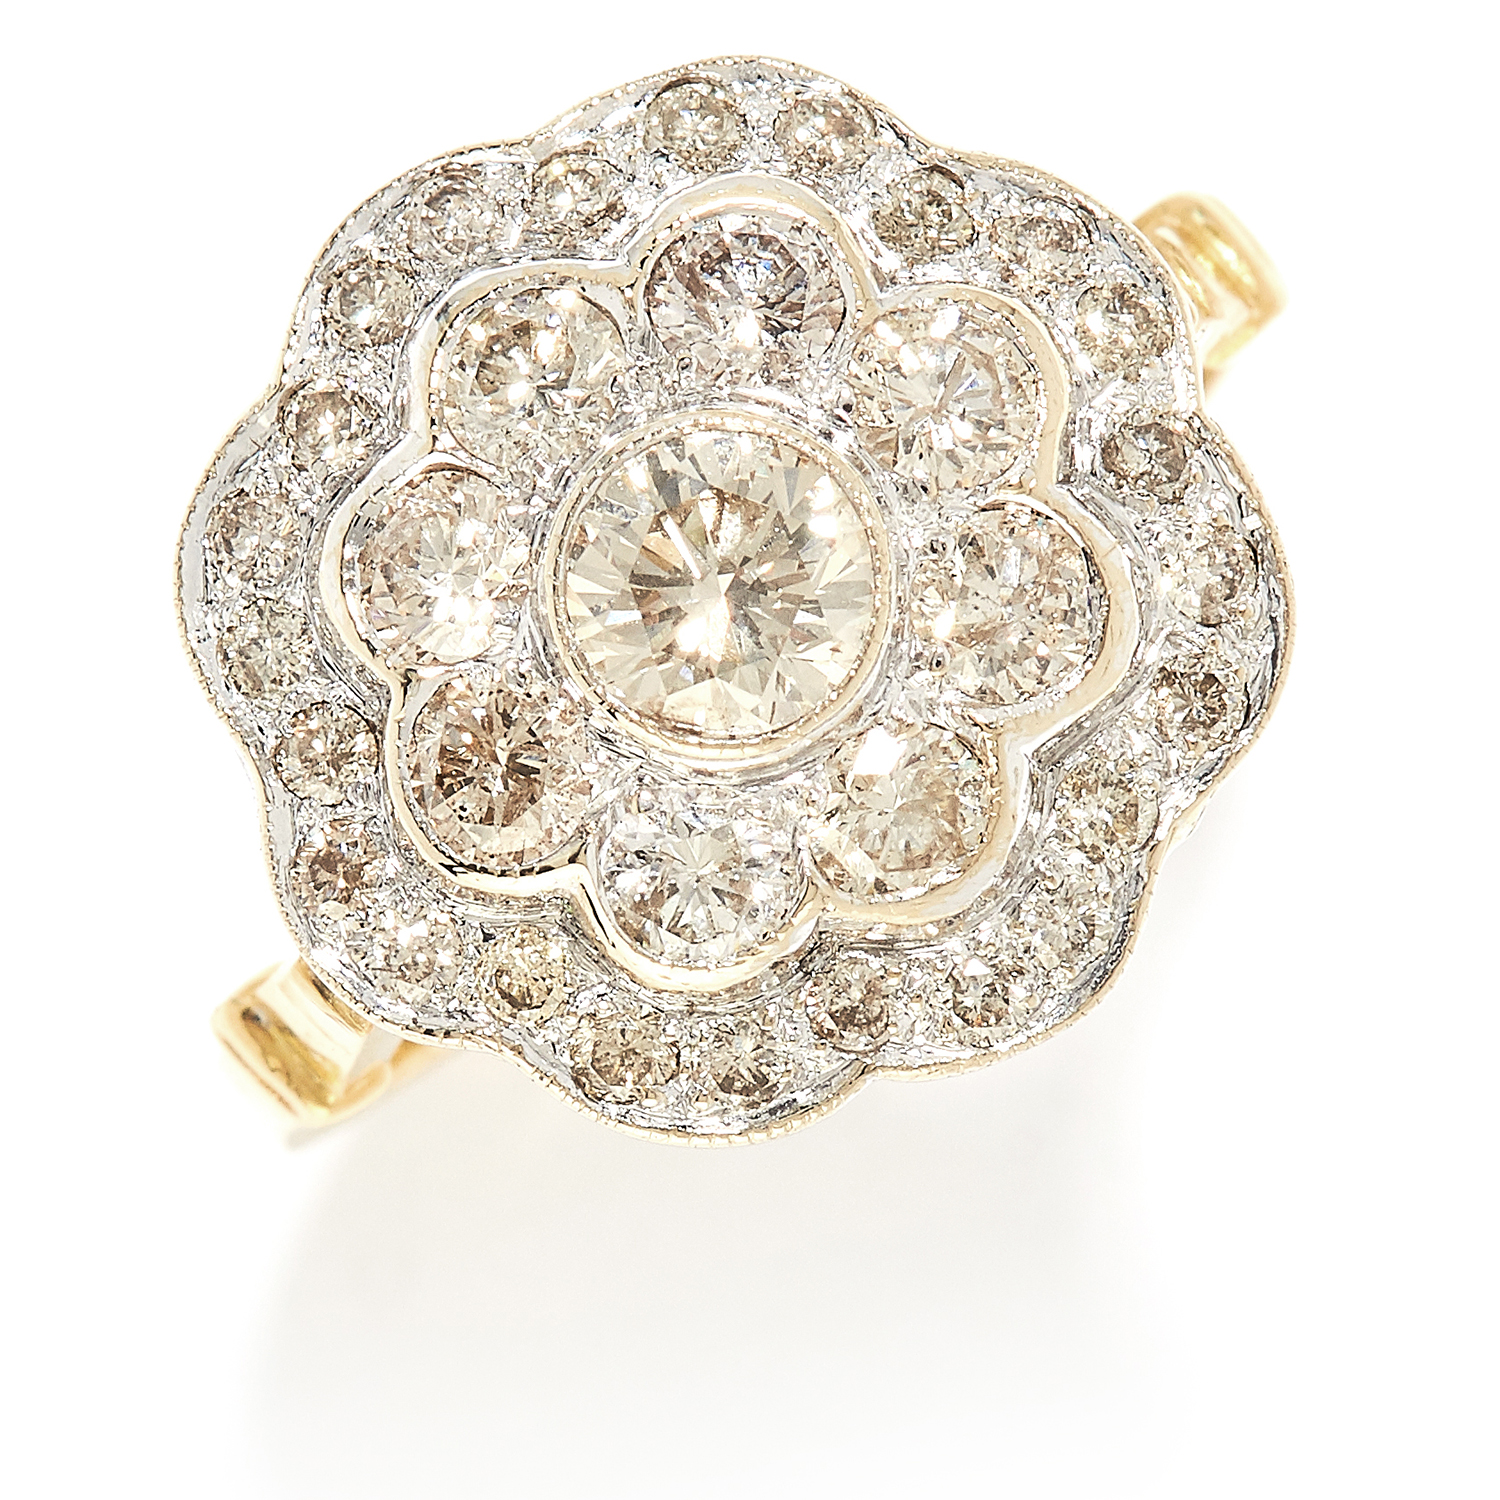 1.70 CARAT DIAMOND CLUSTER RING in high carat yellow gold, set with round cut diamonds totalling